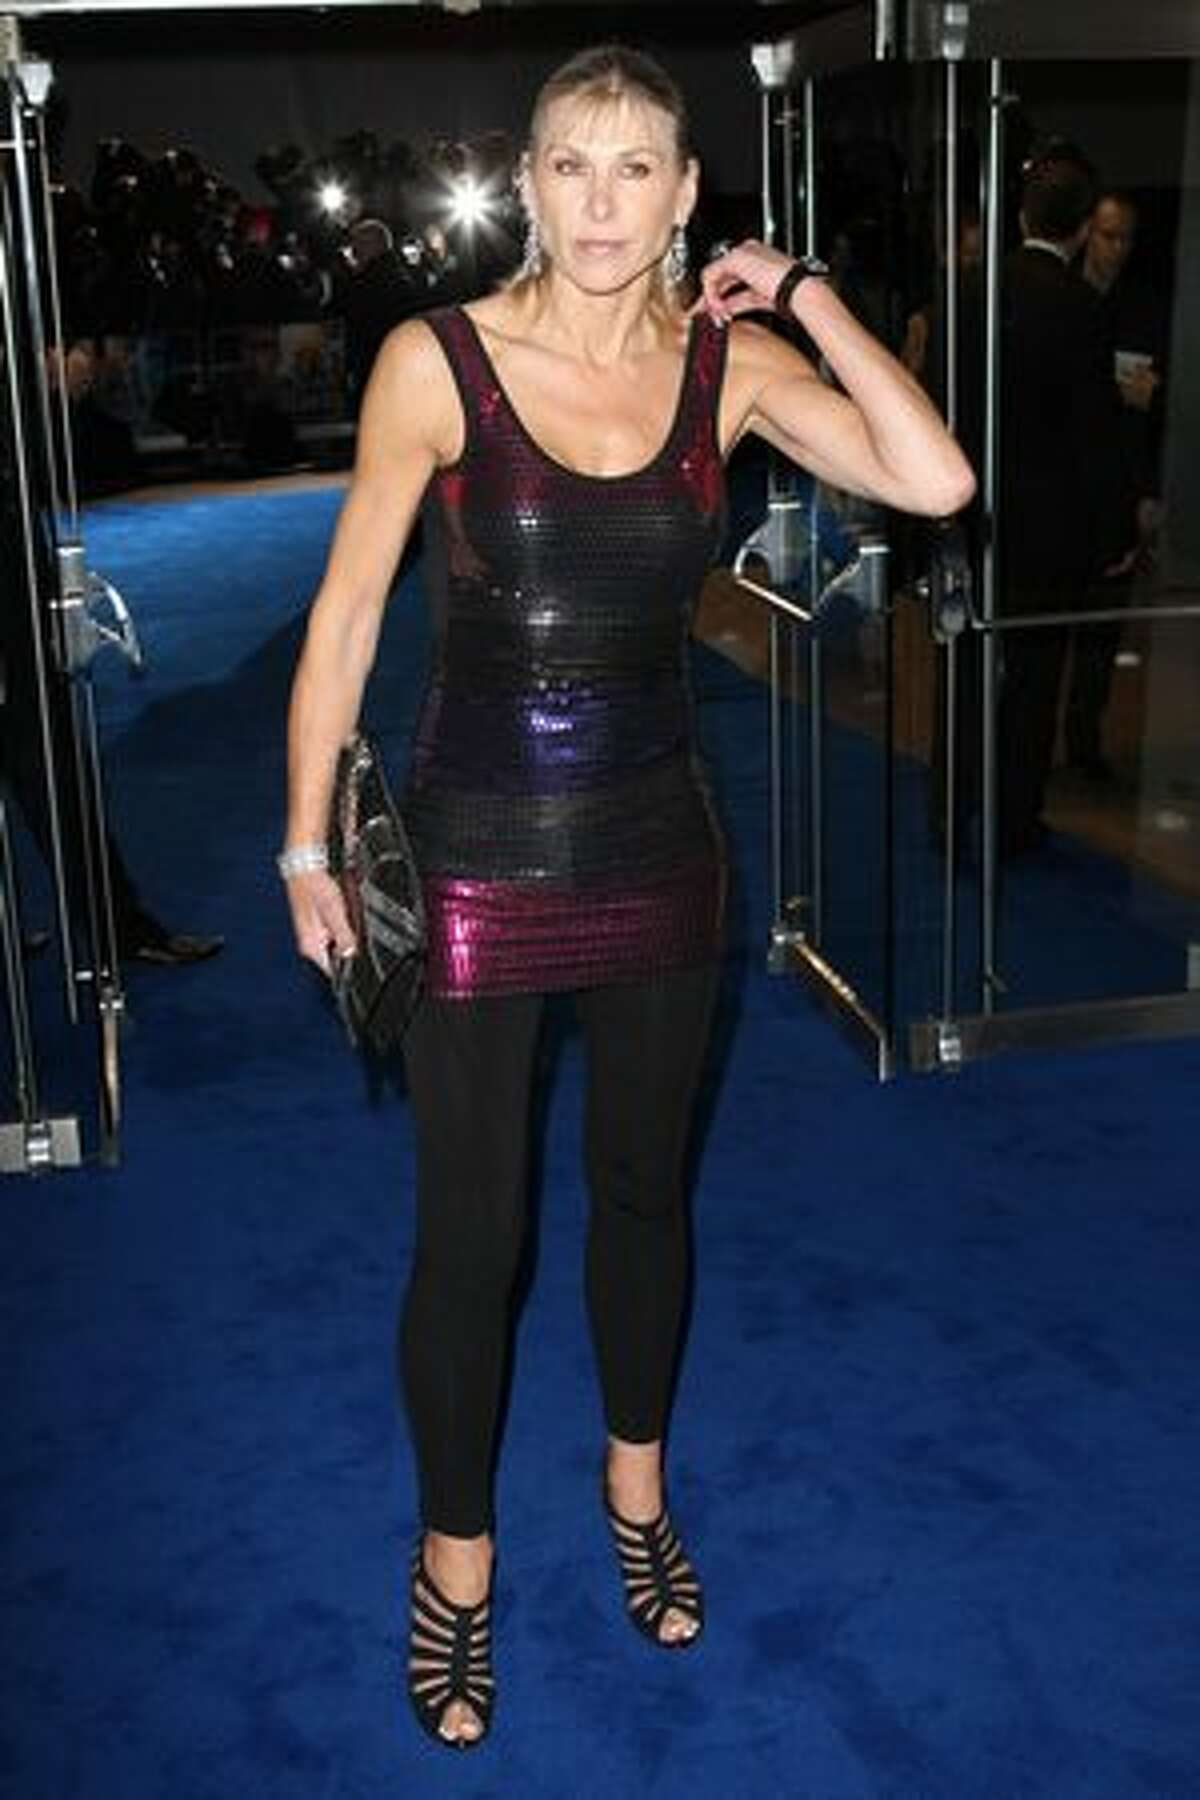 Sharron Davies attends the world premiere of Avatar held at The Odeon Leicester Square in London, England.